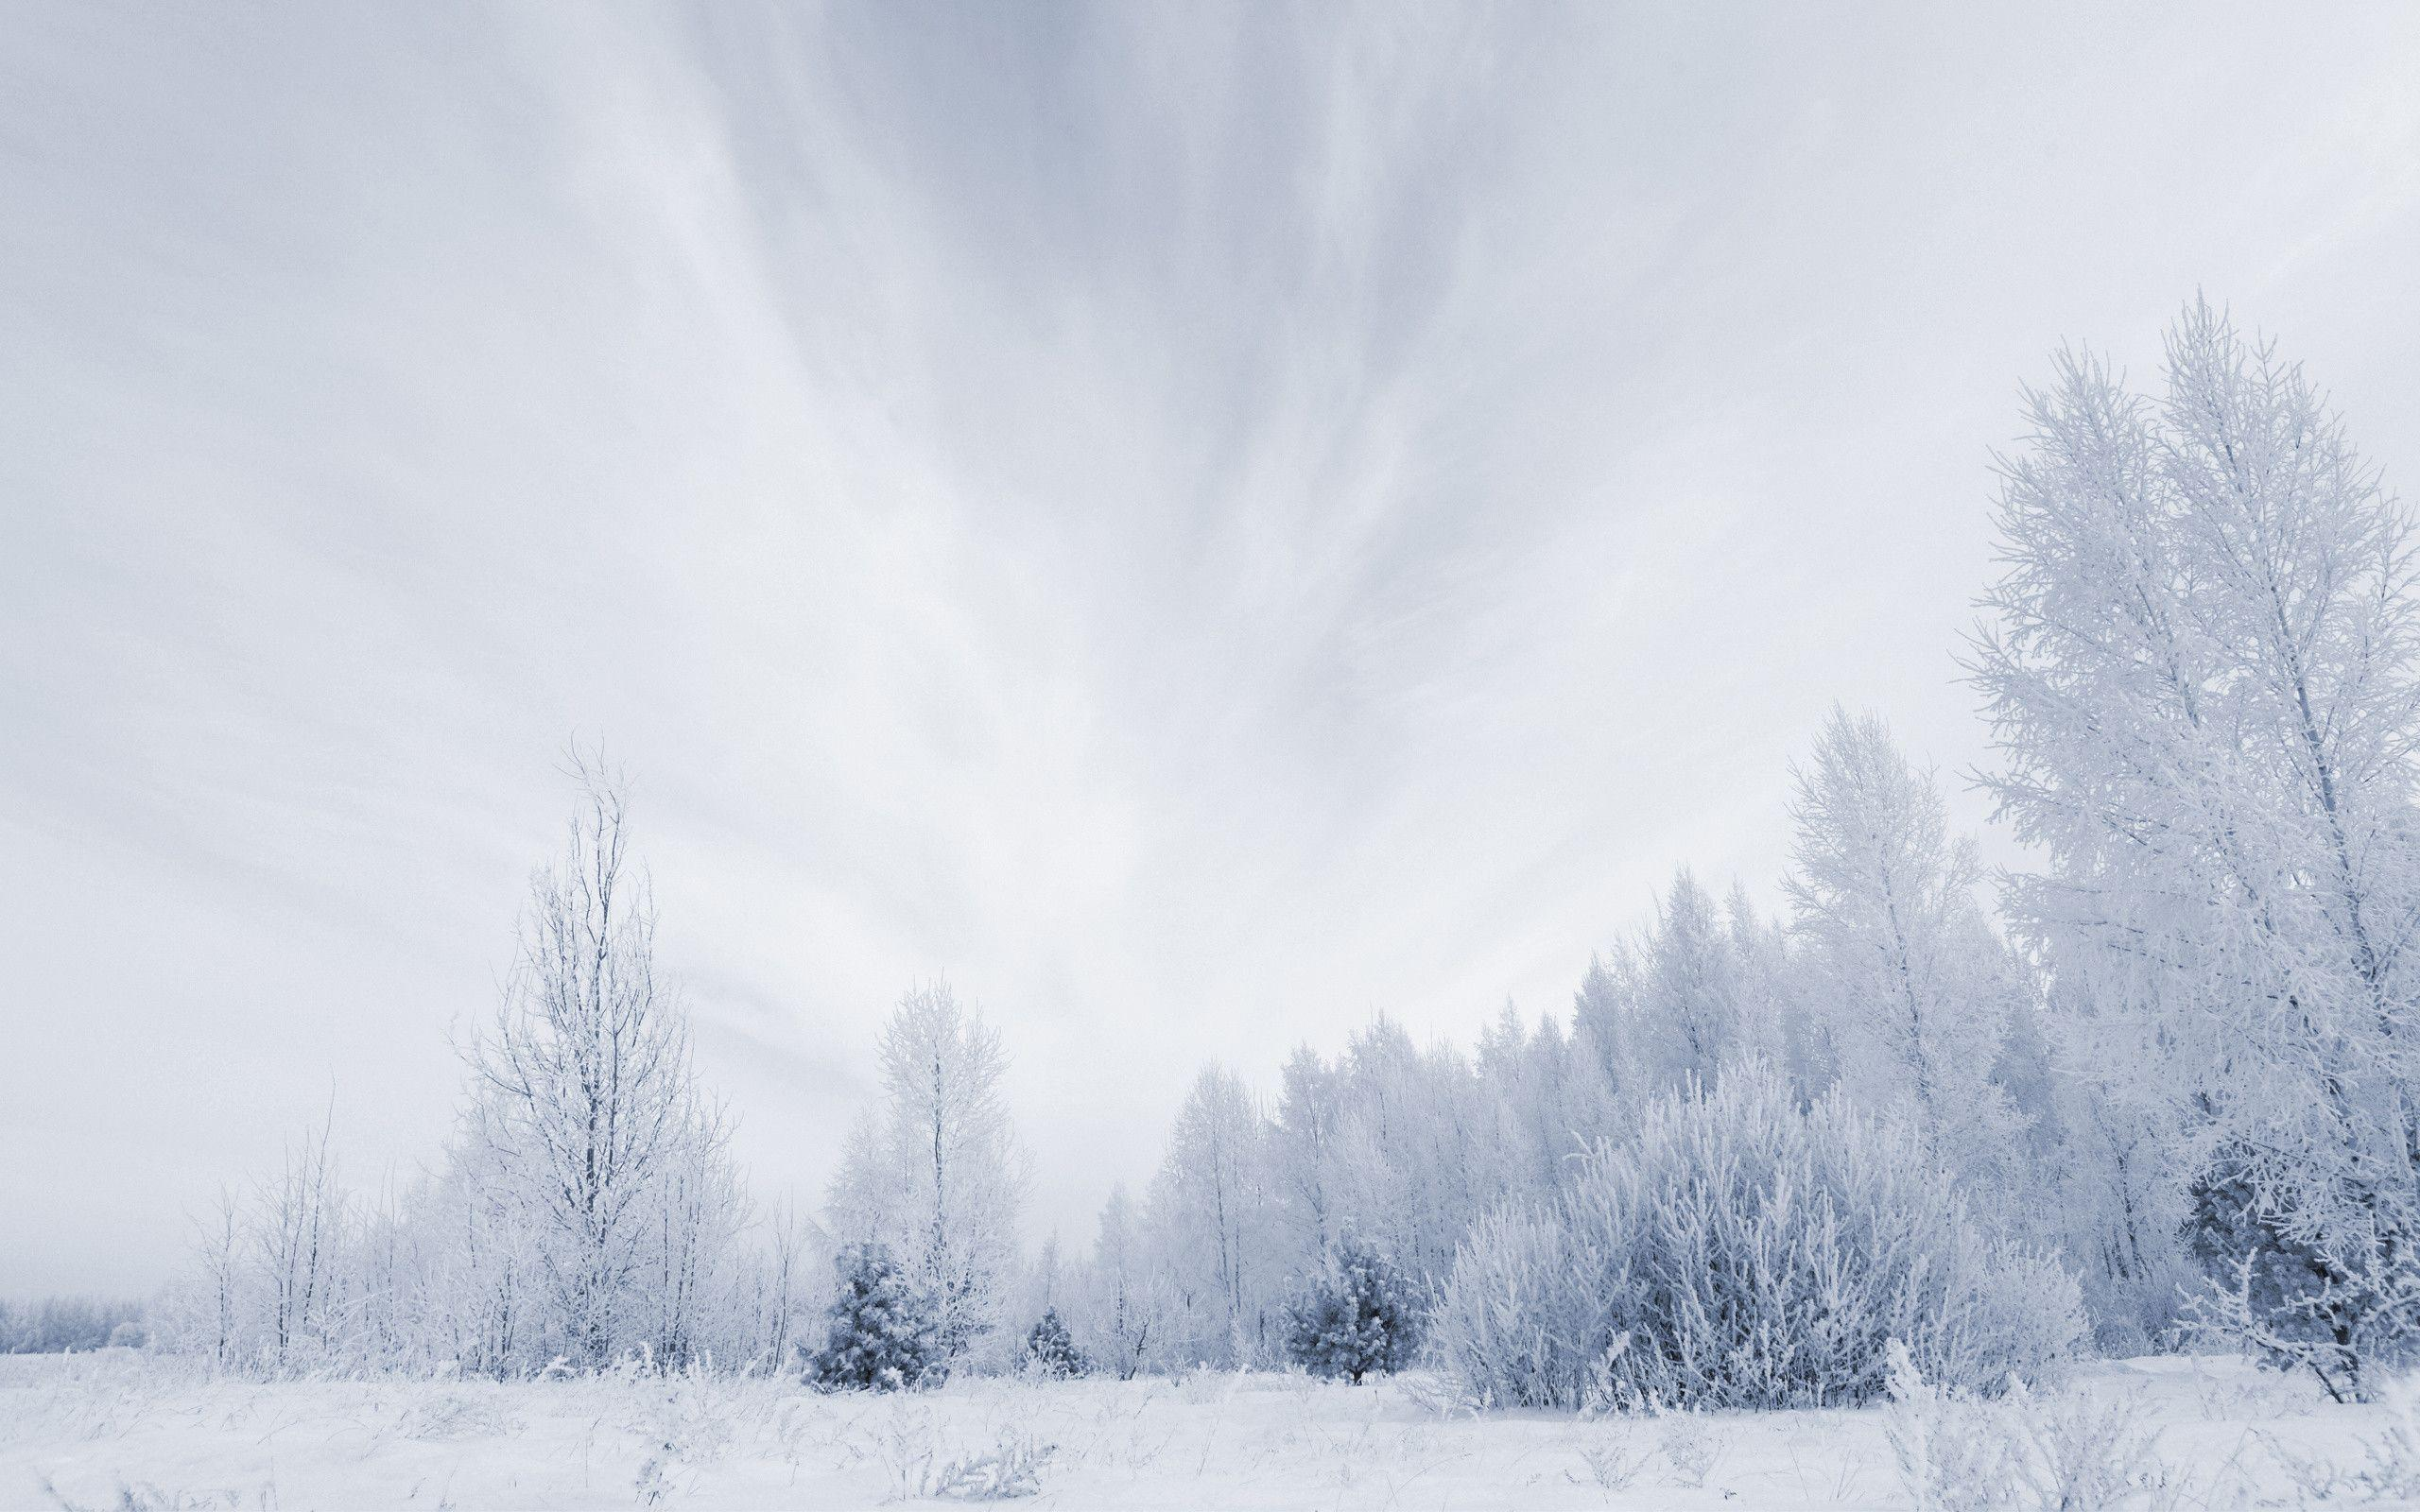 snowy nature wallpaper - photo #19